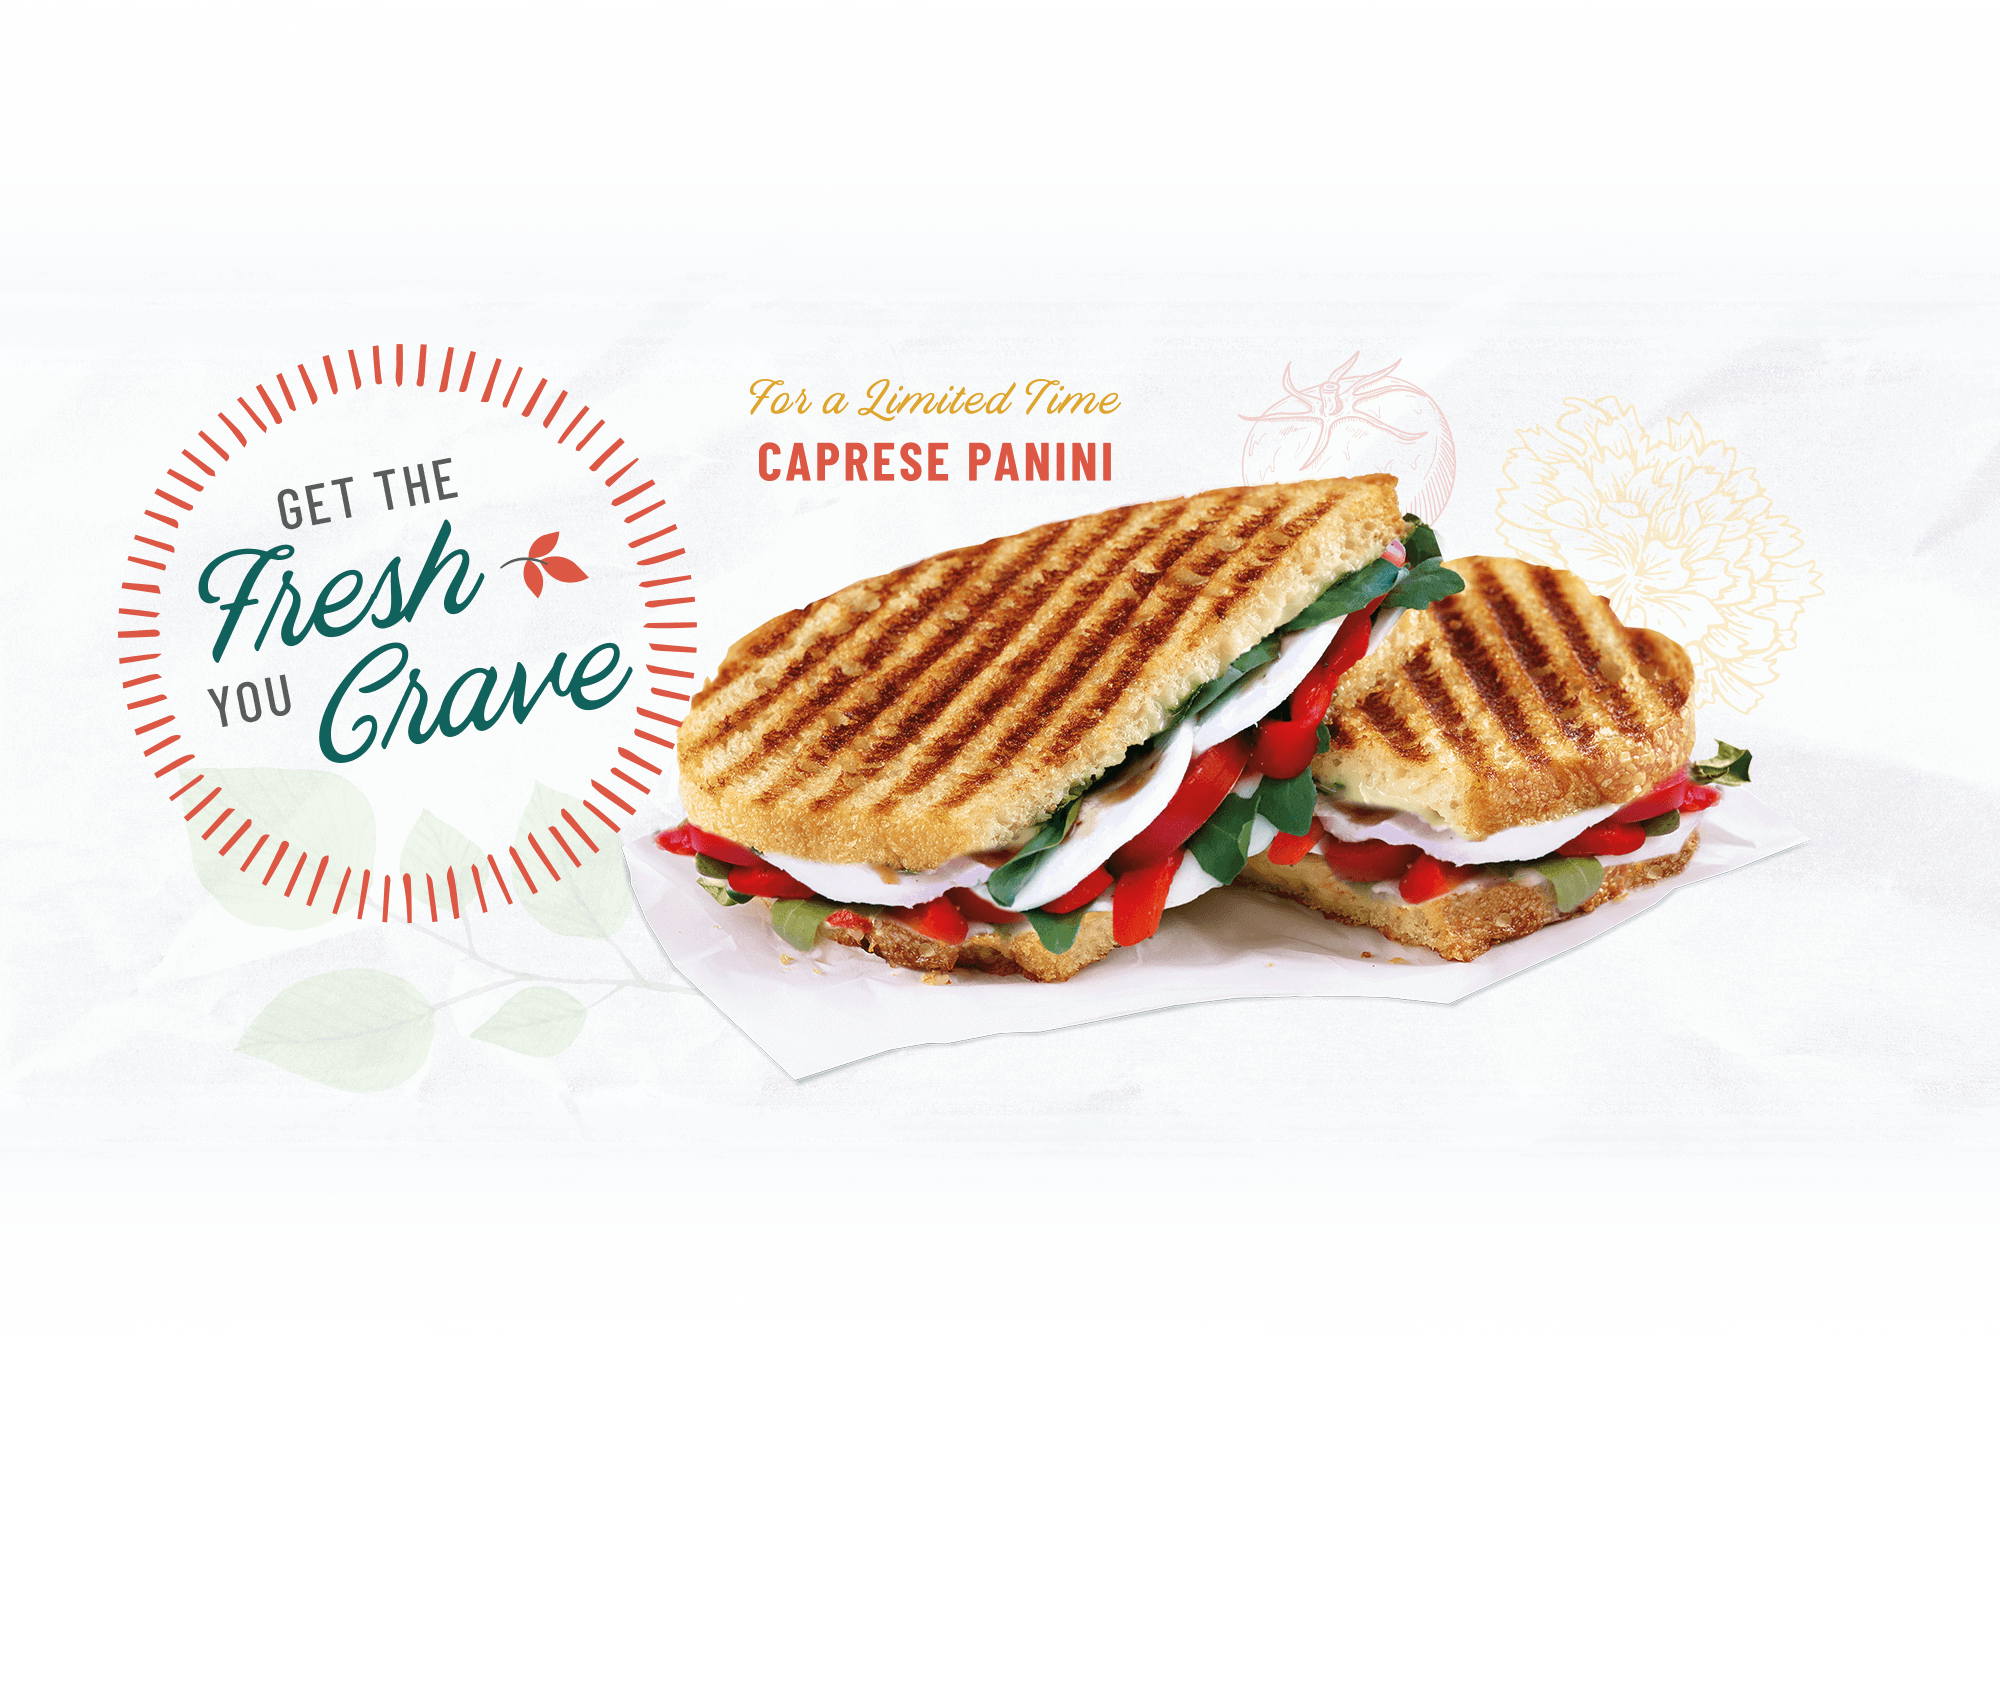 For a limited time - Caprese Panini